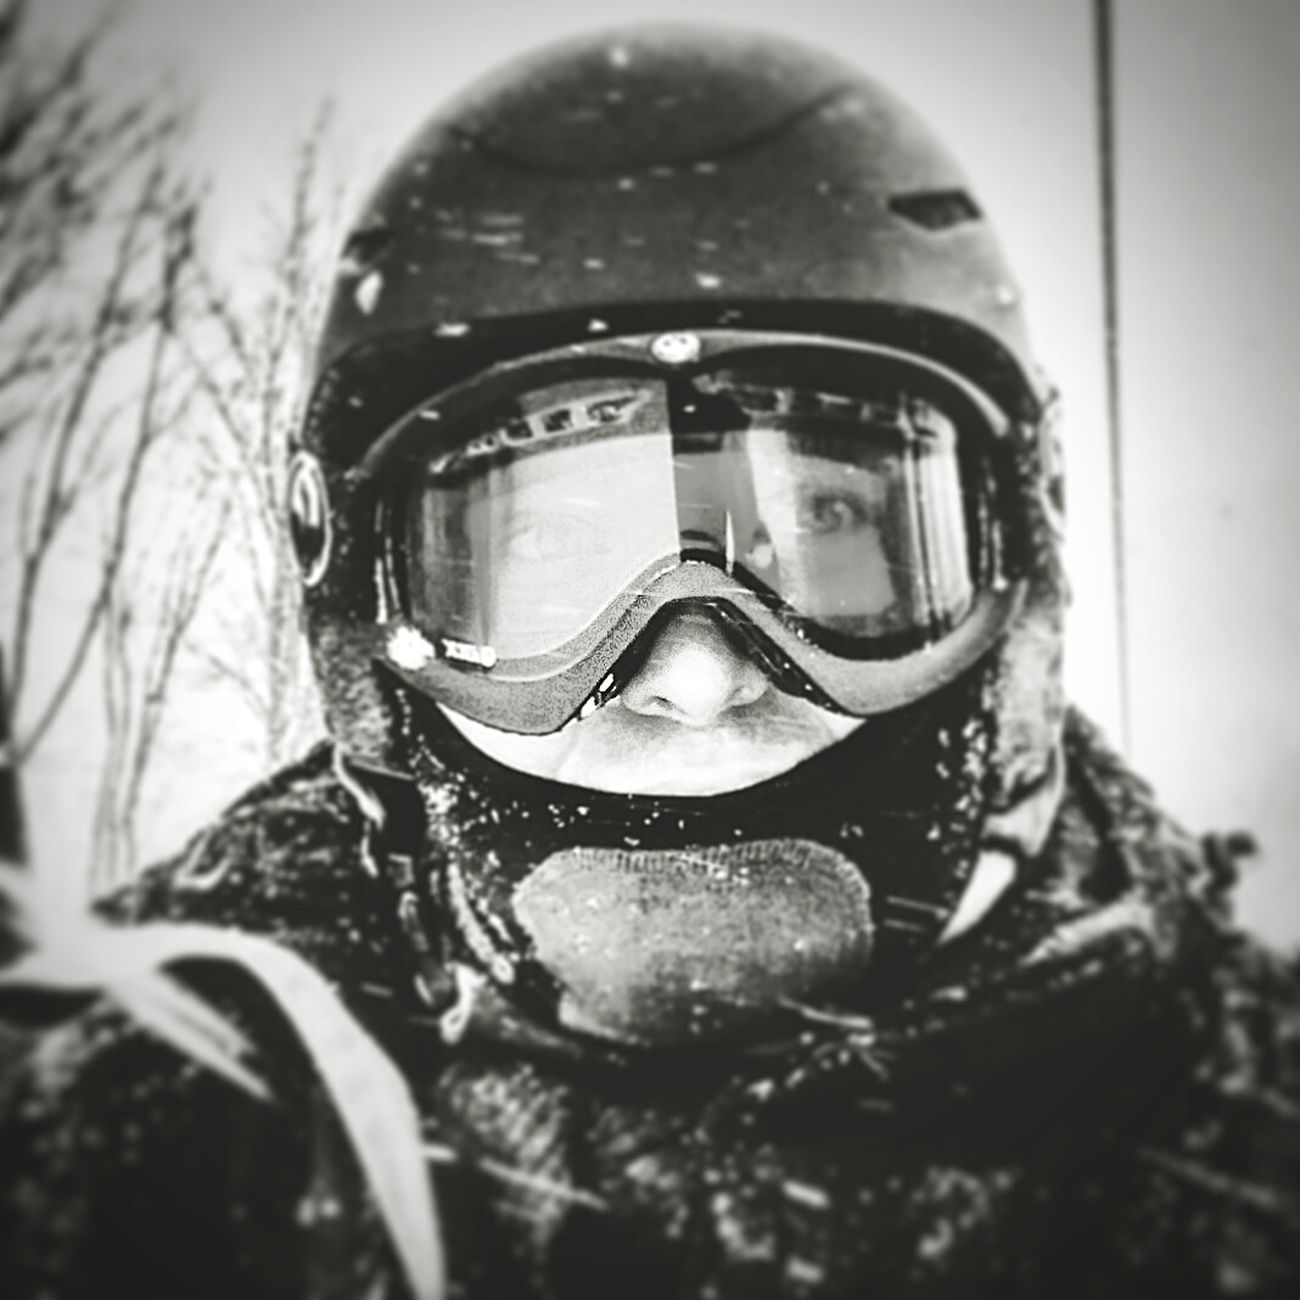 Snowboarding Self Portrait Winter Winter Wonderland Snowboard Moments Snowboarden Snowboarders Snowboarding ❤ Snowboarder Snowboard Life Snowboard Goggles SnowboardingggggHeadshot One Person War Camouflage Clothing Zima Snow ❄ Snowy Days... Snowboard Session Ski Skiing ❄ Snowboareding With Friends  Snowboard Helmet Zabawa